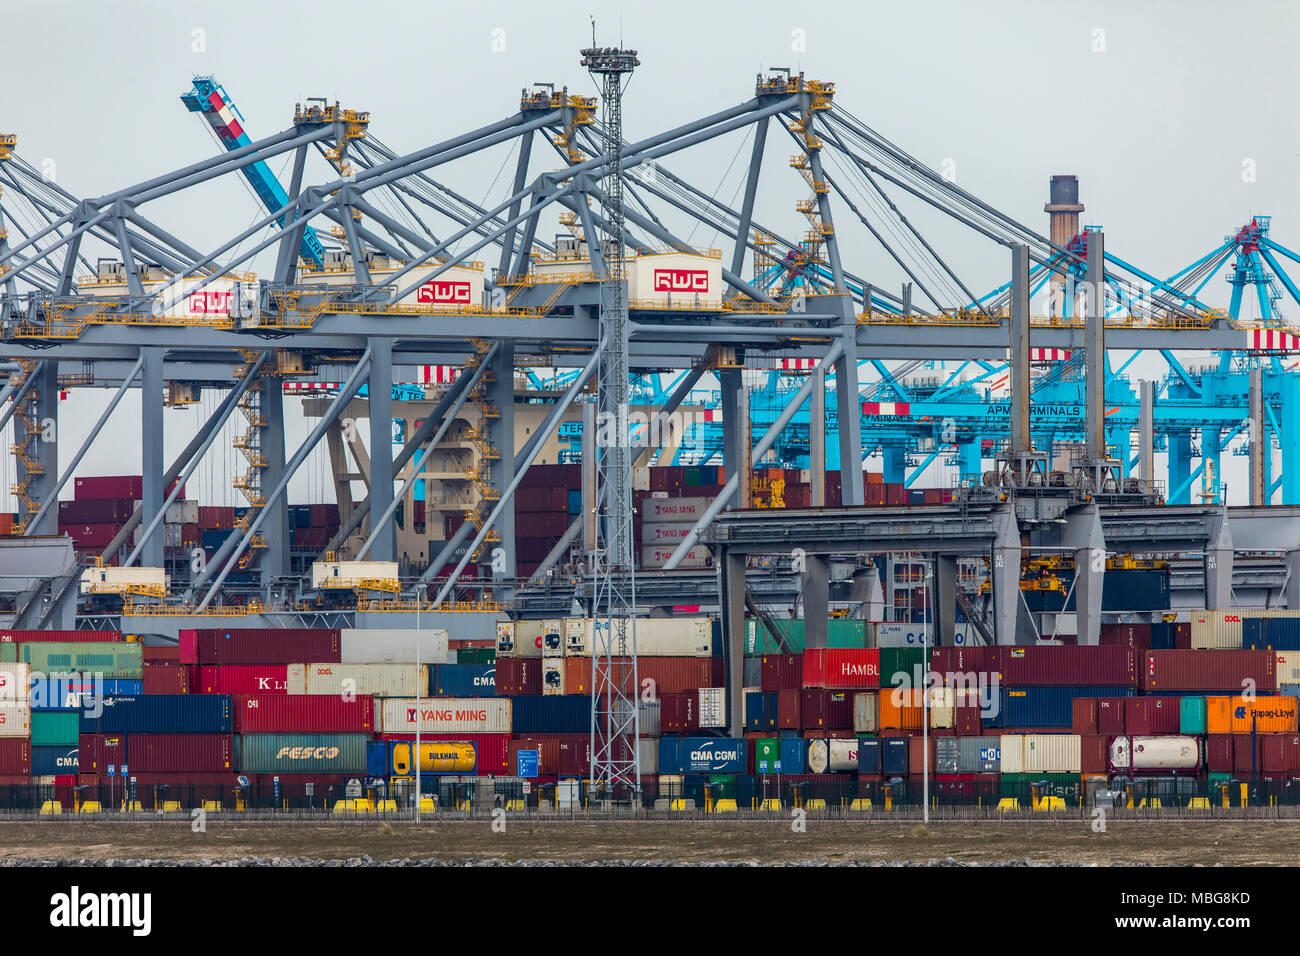 The seaport of Rotterdam, Netherlands, deep-sea port Maasvlakte 2, on an artificially created land area in front of the original coast, Rotterdam Worl Stock Photo